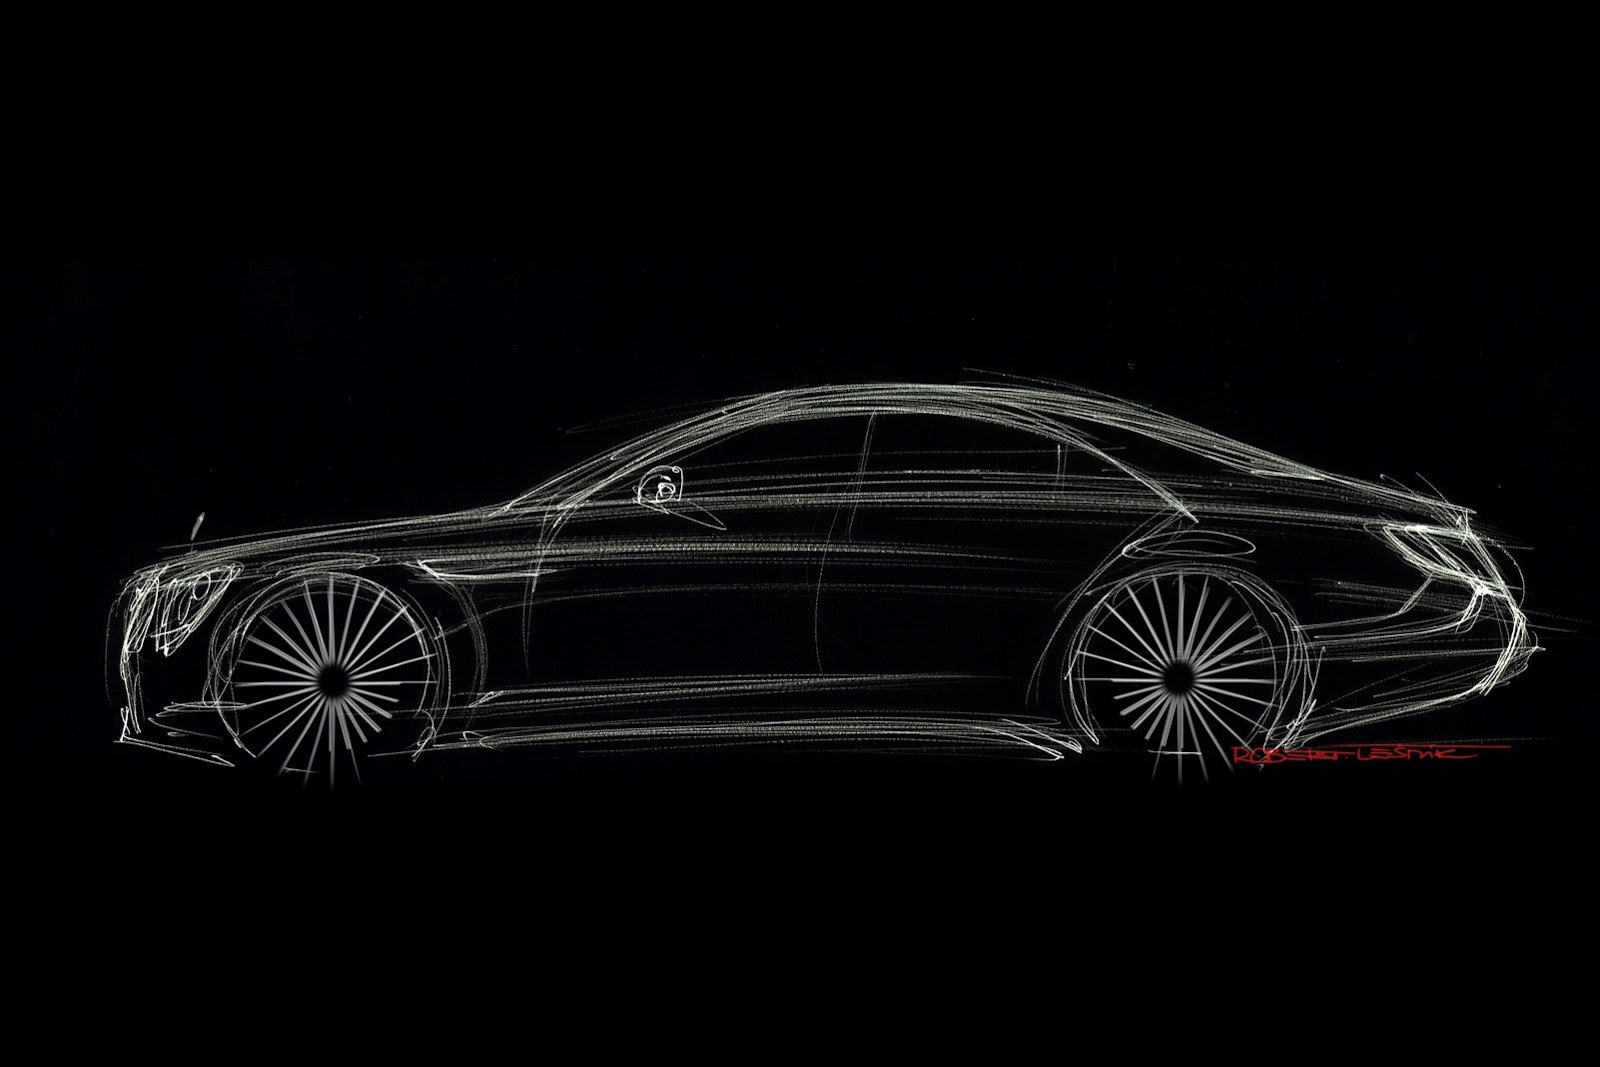 2014 Mercedes Benz S-Class Sketch - SMADE MEDIA (4)